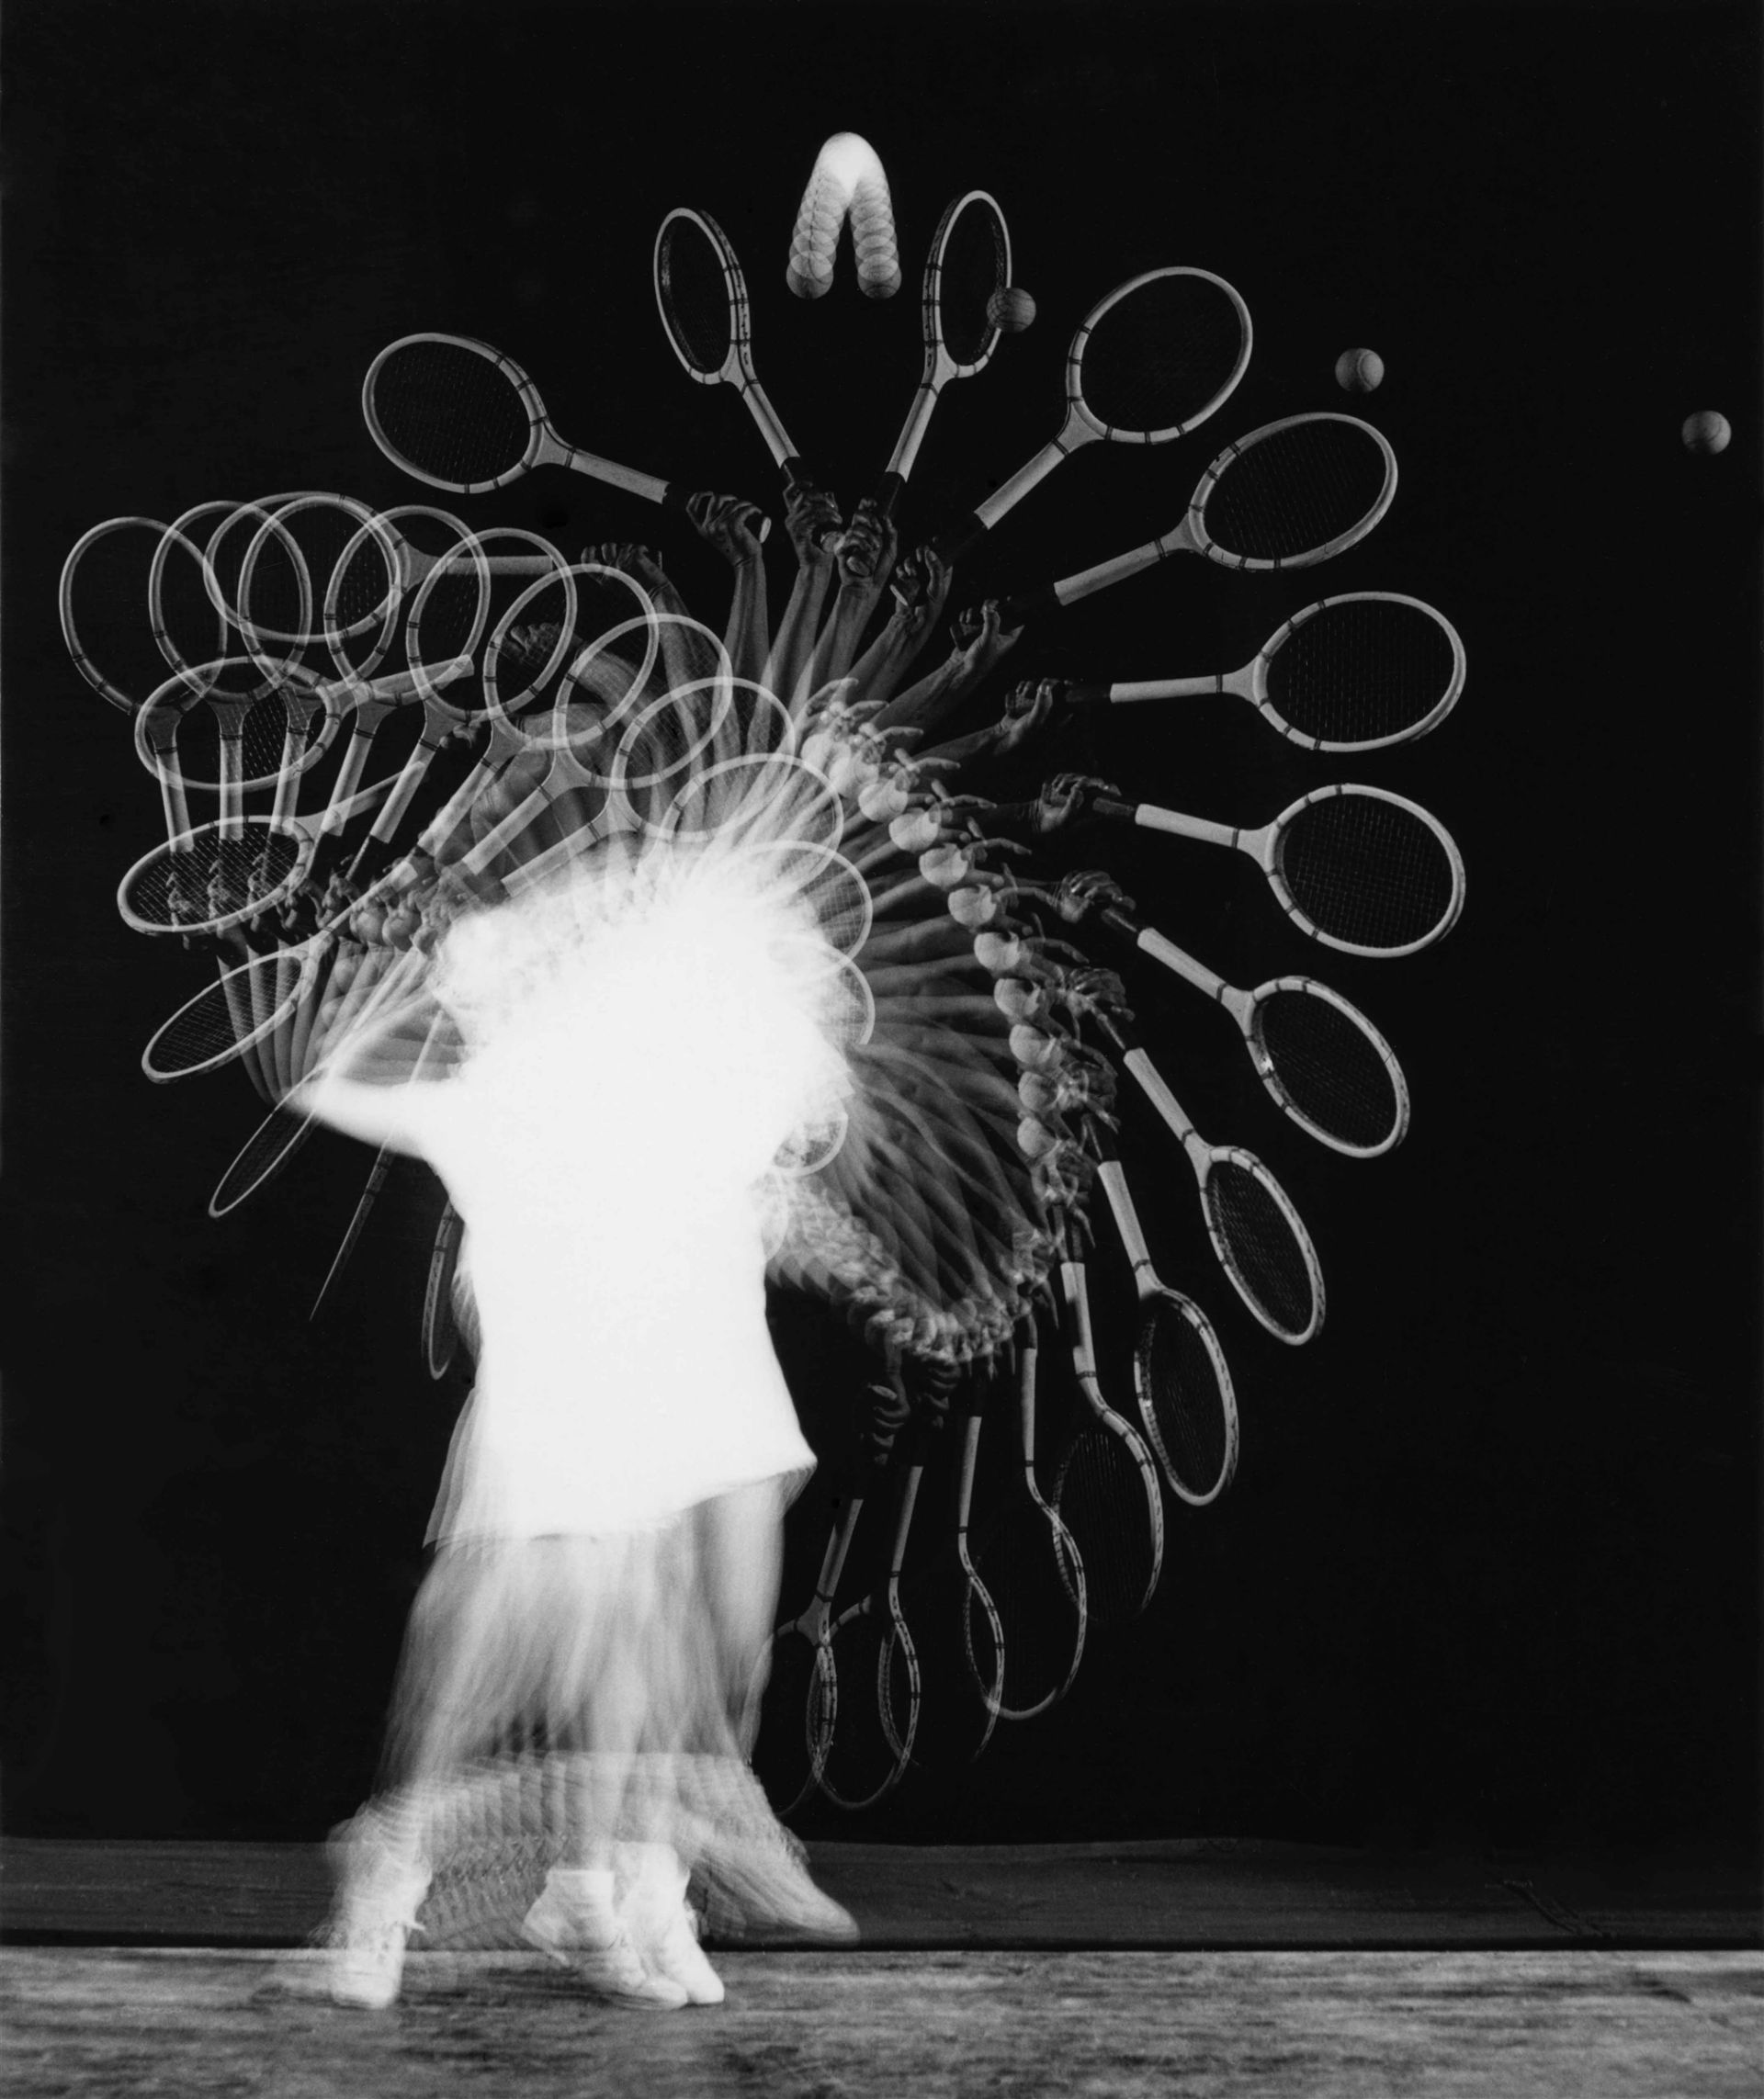 <i>Gussie Moran-Tennis Serve, Multiflash,</i> 1949<br> gelatin silver print<br> 12 x 16 inches<br> In 1949, Edgerton brought his strobes and other equipment to the Longwood Club to photograph the touring tennis stars. He was given a few minutes with each in an anteroom before they went out for their matches. Here, the outstanding British tennis player Gussie Moran tosses the ball into a perfect parabola for a power serve. Moran was especially well known for her sense of fashion style and her outfits - she refused to wear Doc's black kimono. In a typically inventive reaction, he determined that he would photograph action outside of her brilliantly white-clad body. In so many of Edgerton's best photographs, what seems like a perfect balance and form was a product of anticipation, timing, and much effort. Edgerton's ability to reveal the surprise of content with beautiful form allows the viewer to discover more than simple visceral pleasure.